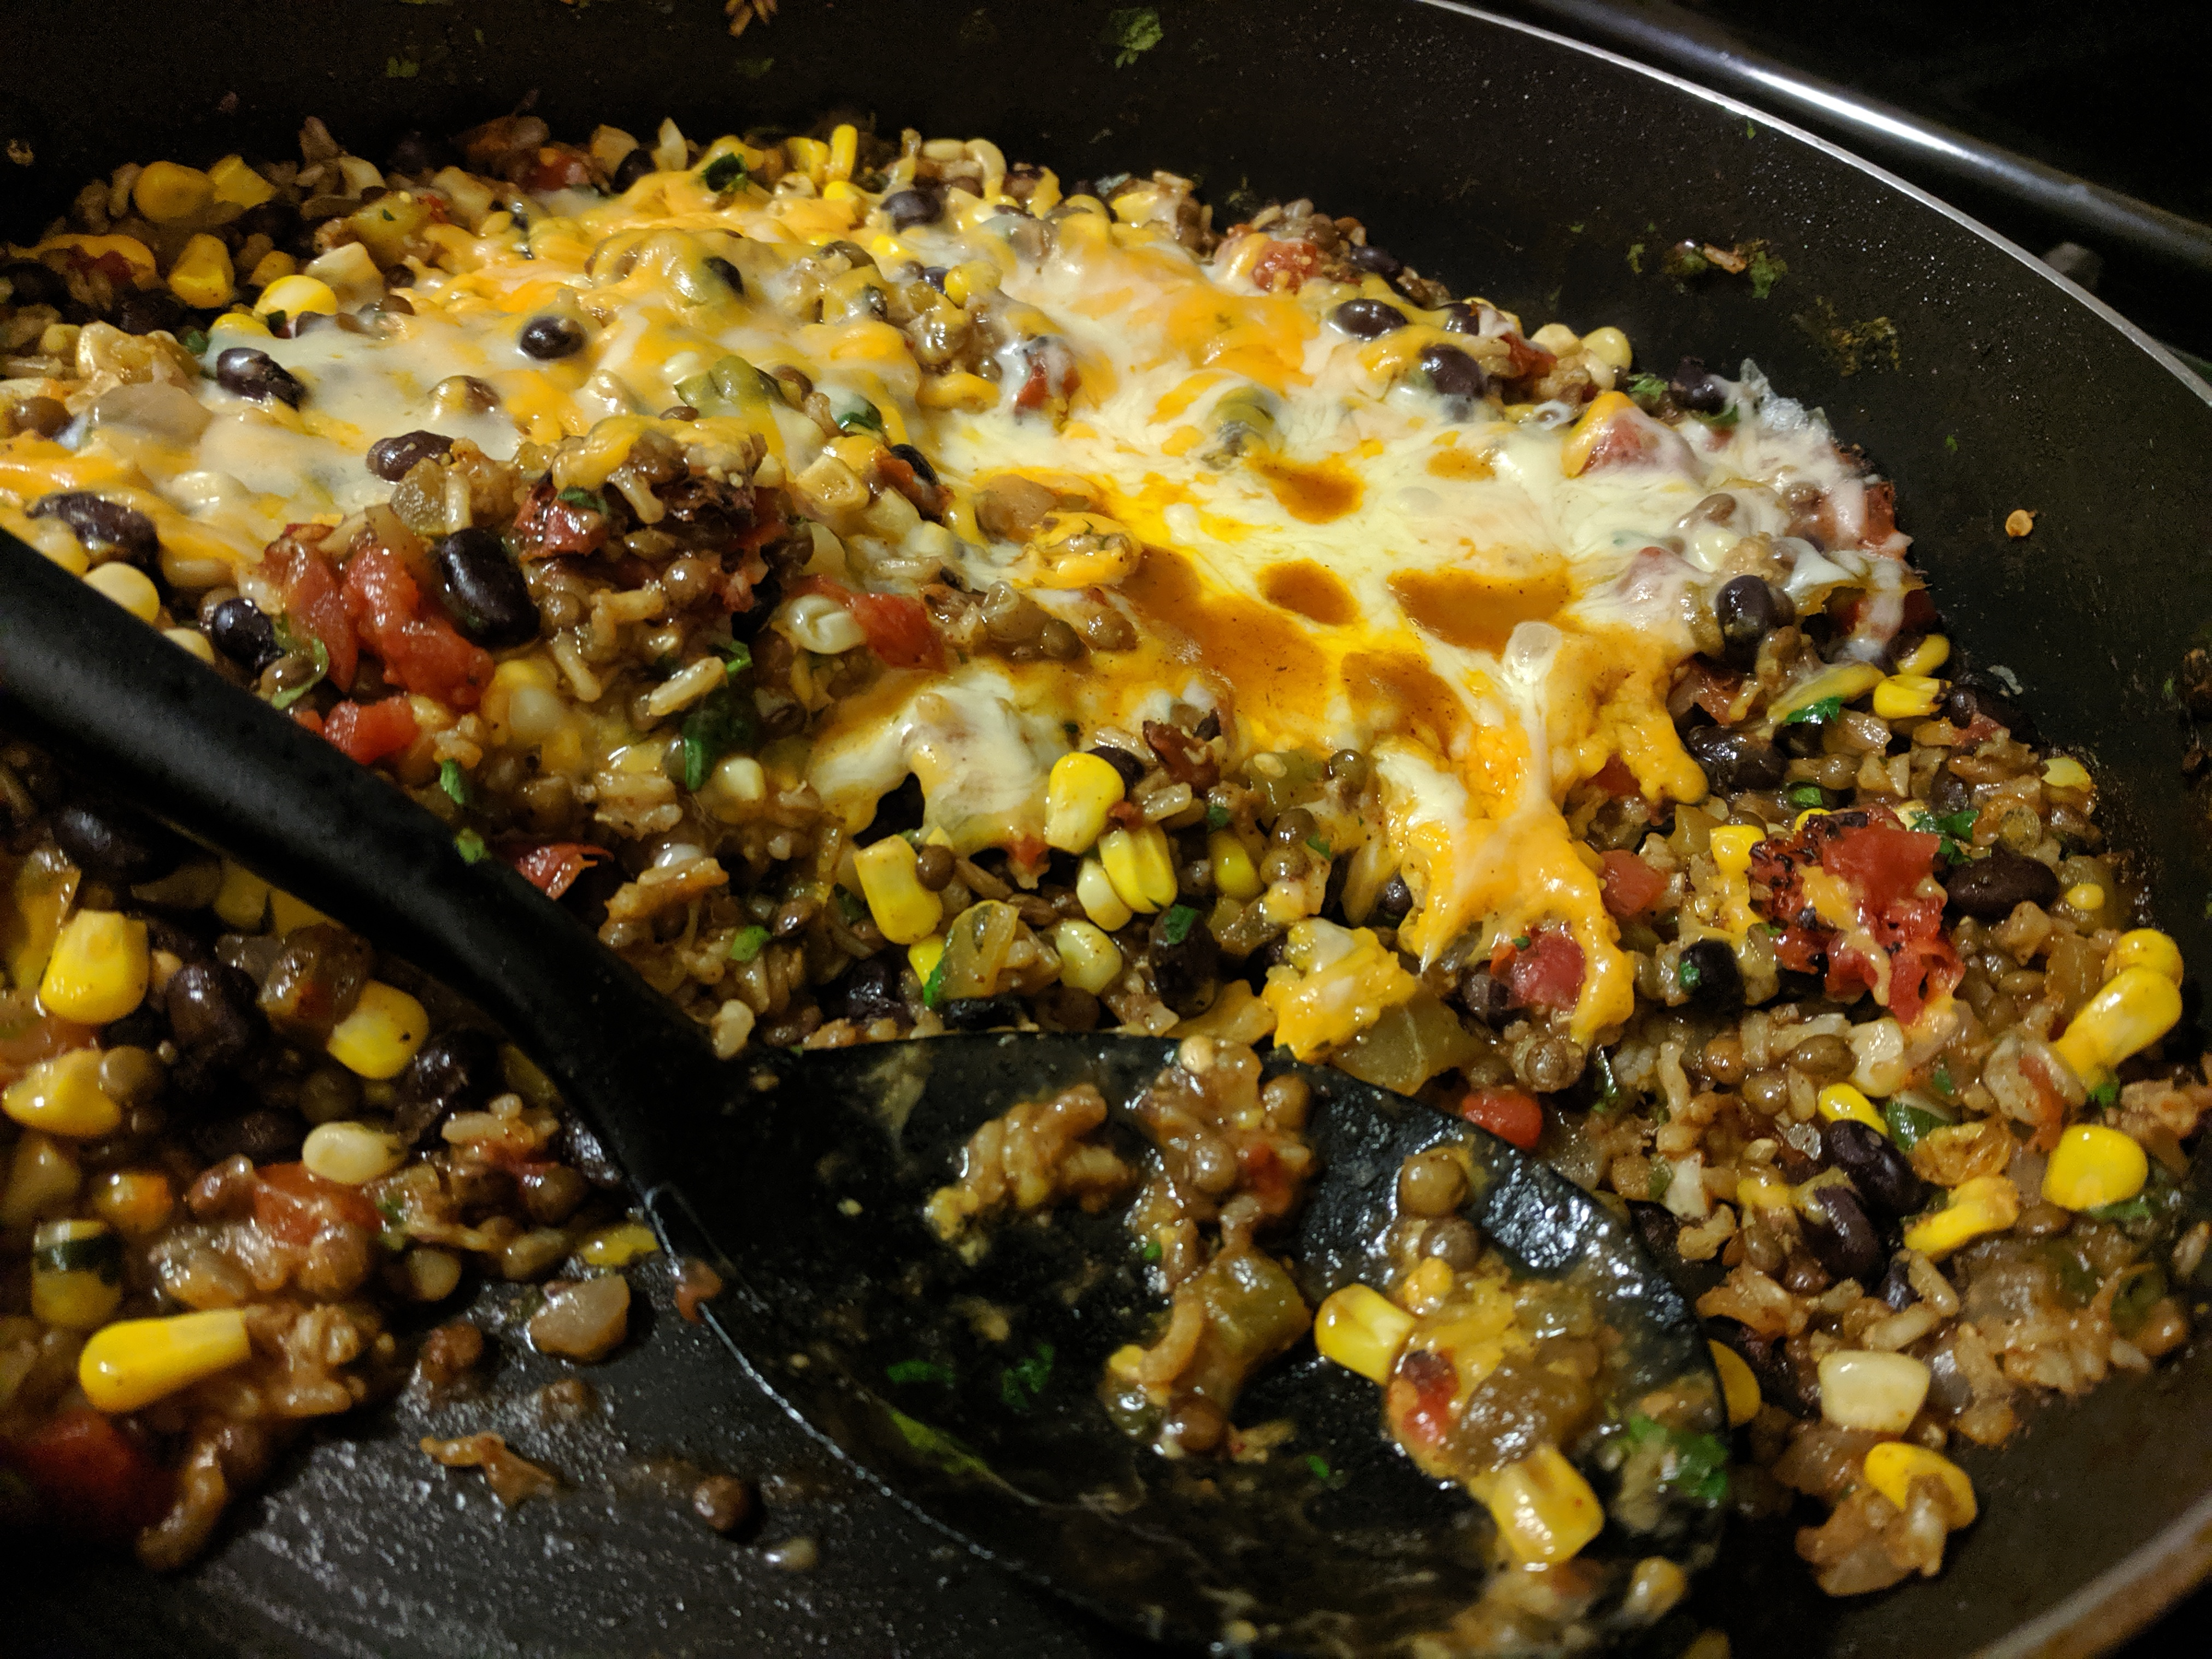 Image of Cheesy Mexican Lentils, Black Beans and Rice